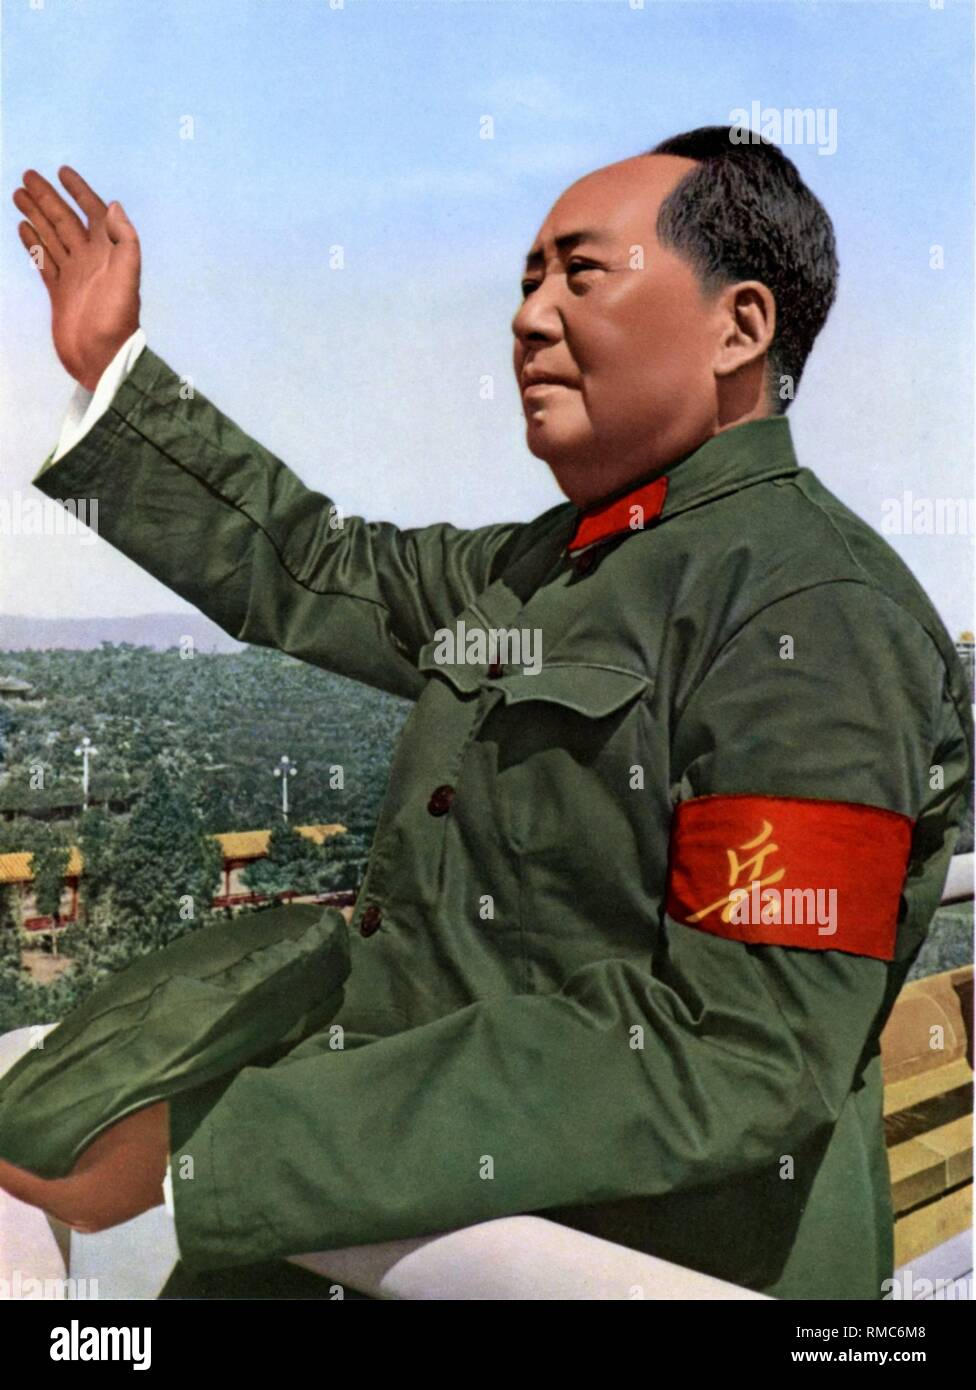 Mao Zedong - (* 26.12.1893 - 09.09.1976), between 1935 - 1976 Chairman of the Chinese Communist Party. Betwee 1954 - 1959 he was President of the People's Republic of China. Chinese propaganda poster of the 'Great Leader' Mao Zedong after swimming in the Jangtze from 1966, undated. - Stock Image